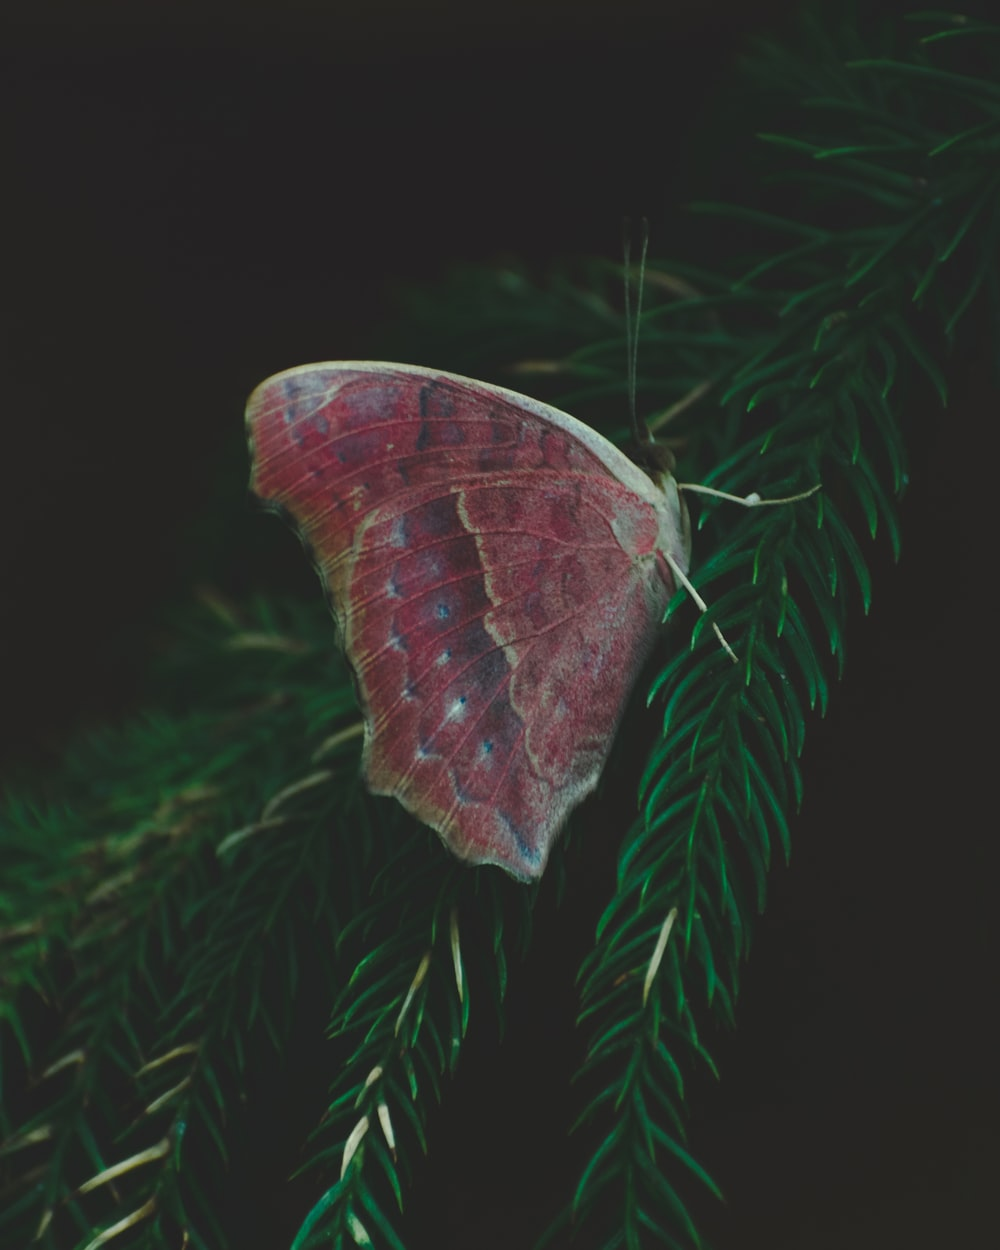 red and brown butterfly on green pine tree